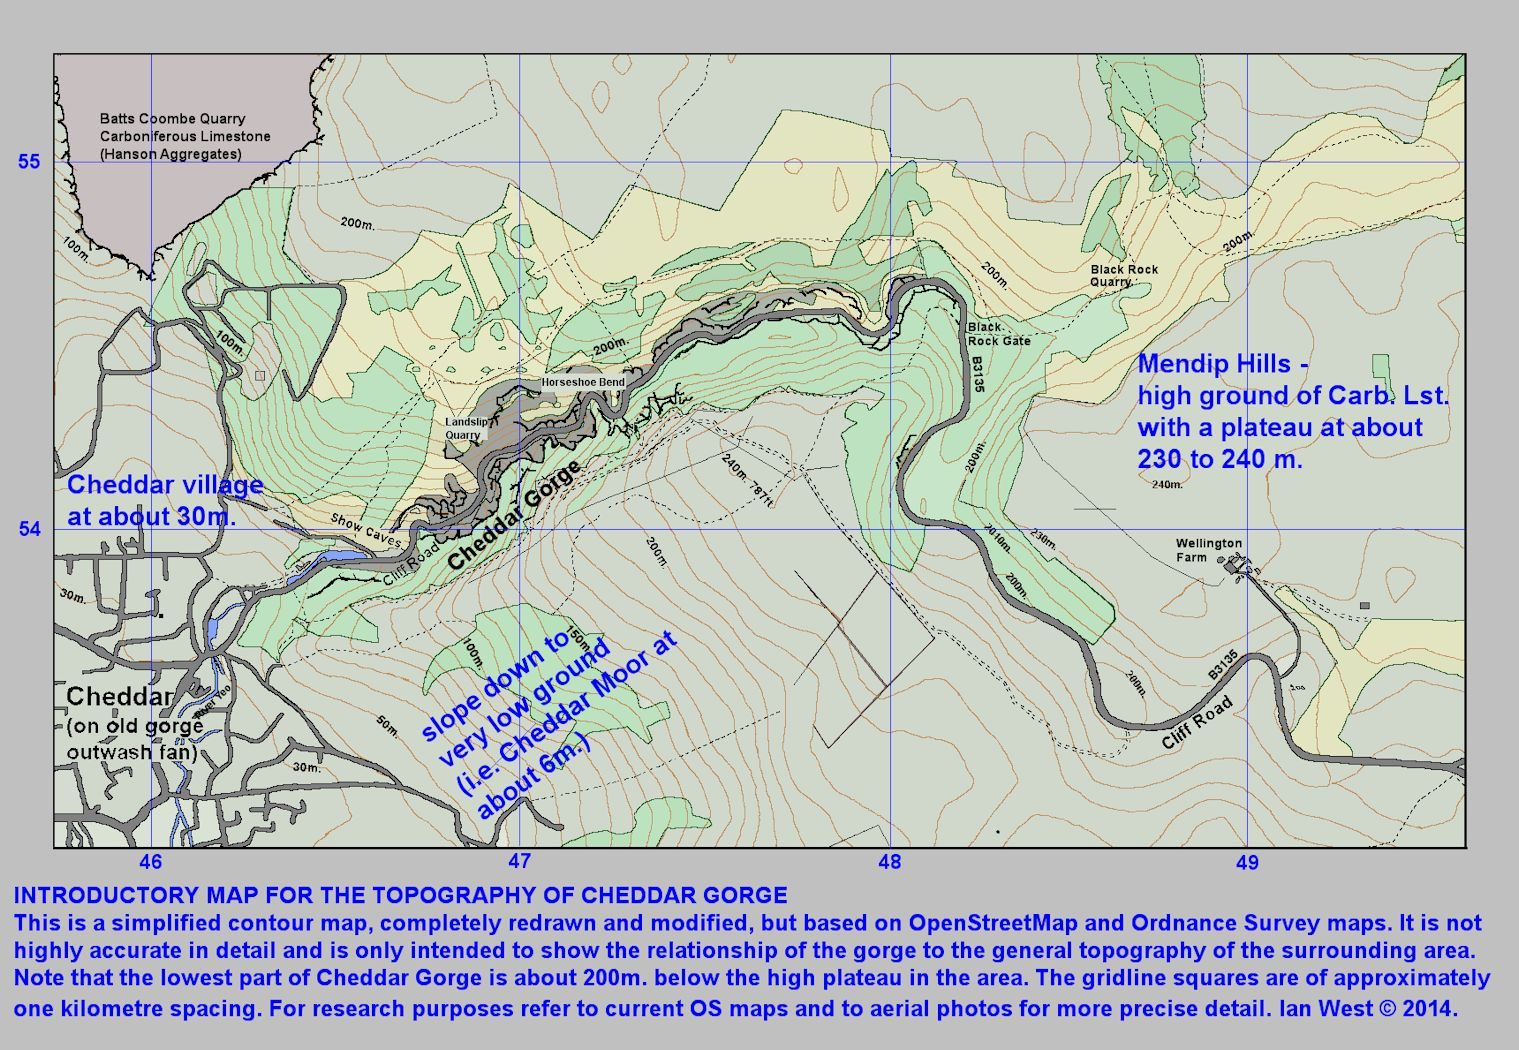 An introductory and simplified contour map of Cheddar Gorge, Mendip Hills, Somerset